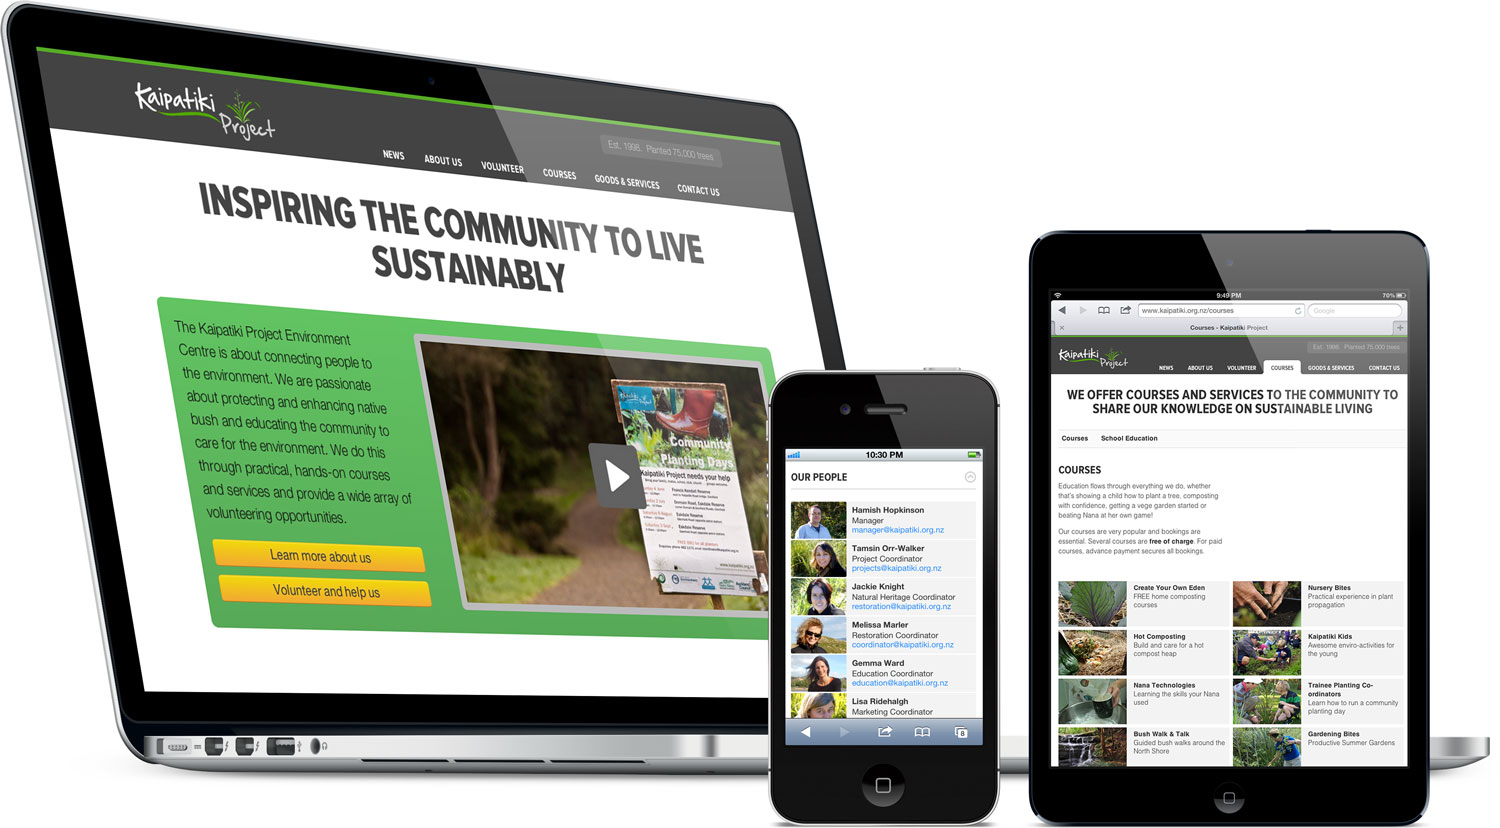 Redesign of the Kaipatiki Project website.